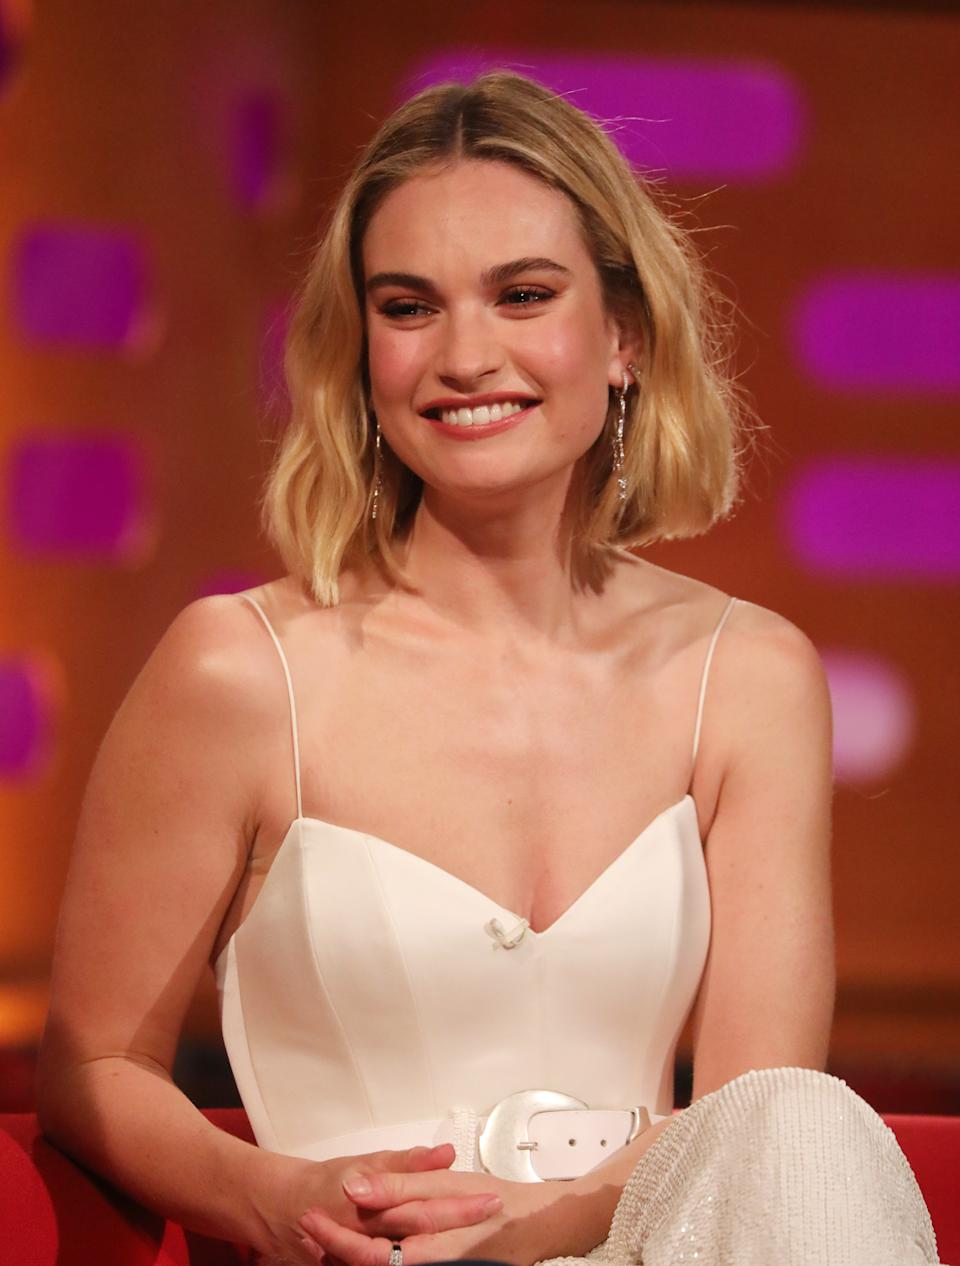 Lily James during the filming for the Graham Norton Show at BBC Studioworks 6 Television Centre, Wood Lane, London, to be aired on BBC One on Friday evening.